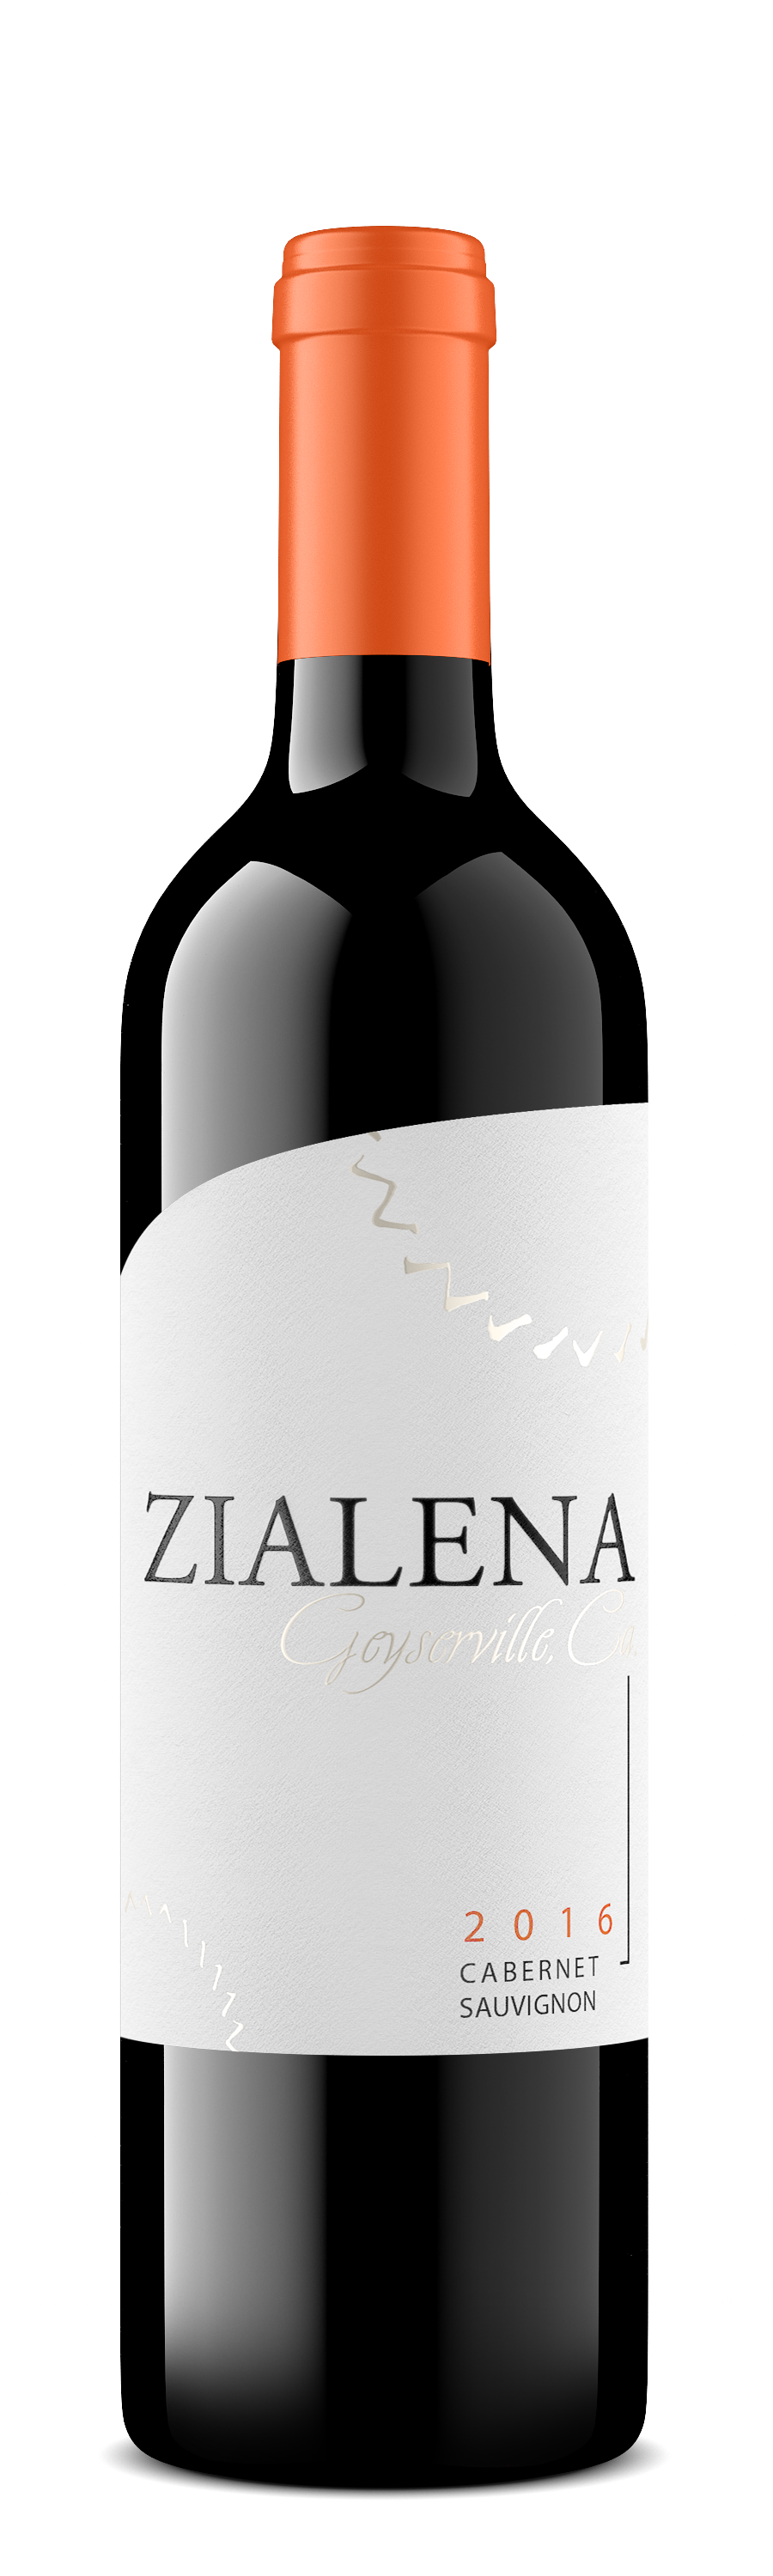 Product Image for 2012 Cabernet Sauvignon